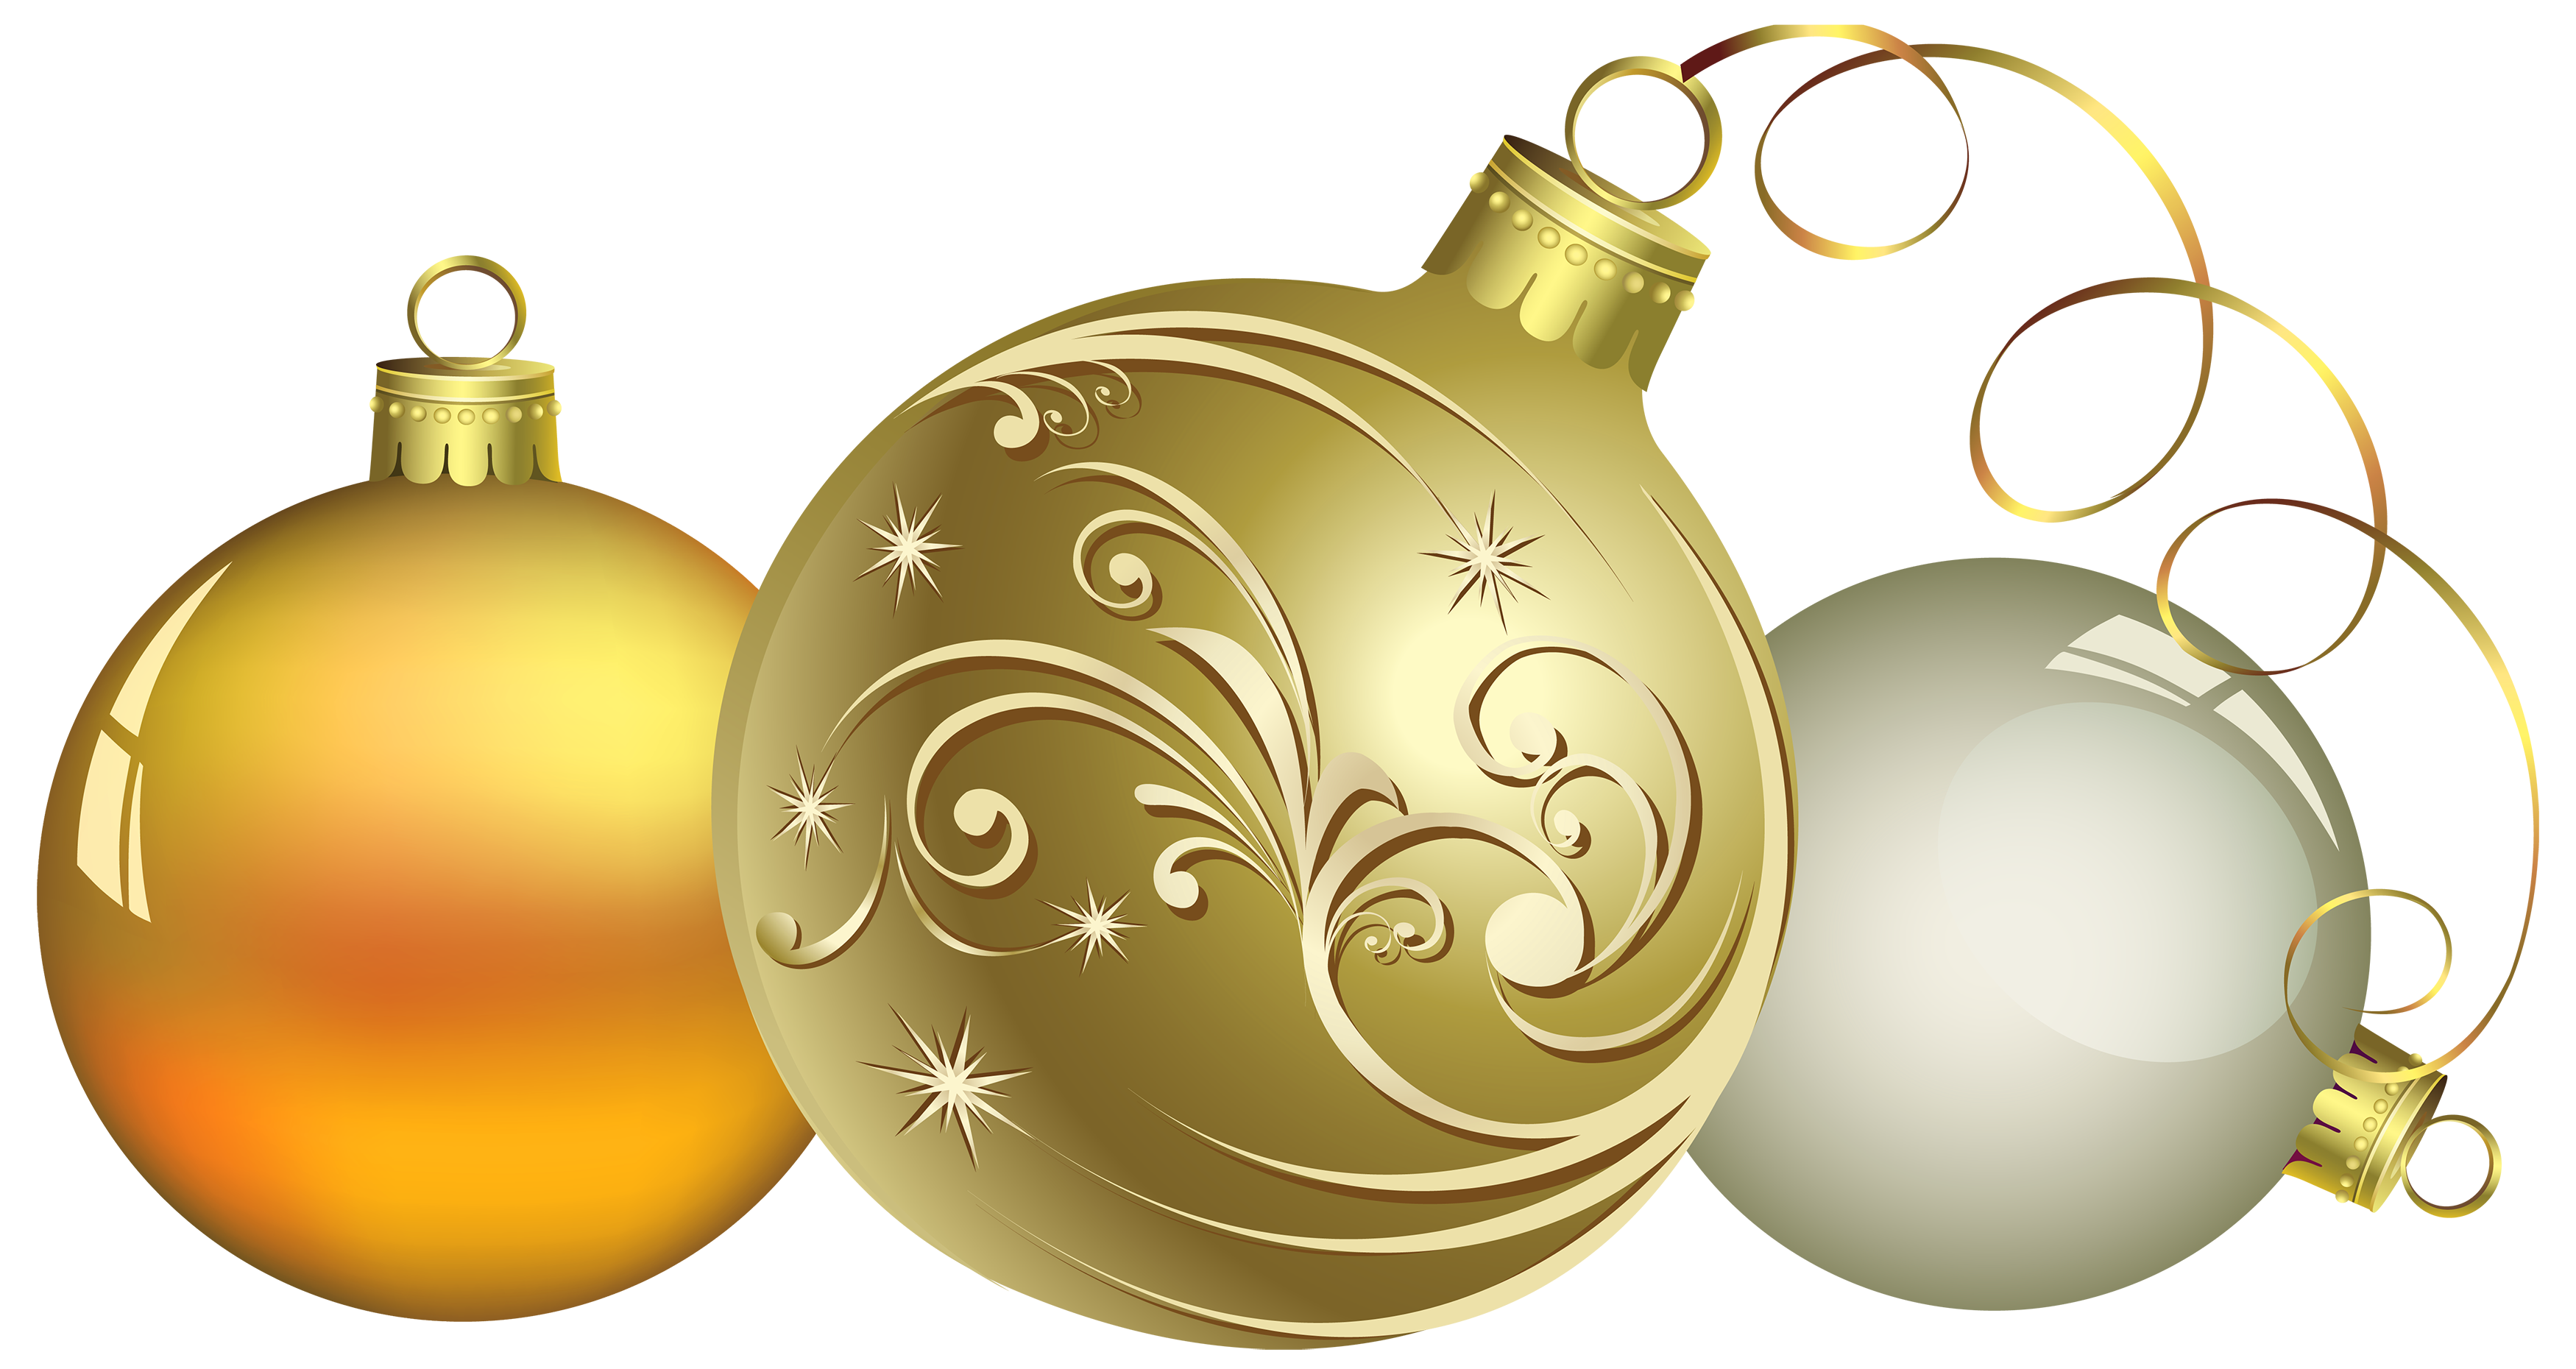 Download this high resolution Christmas PNG Image